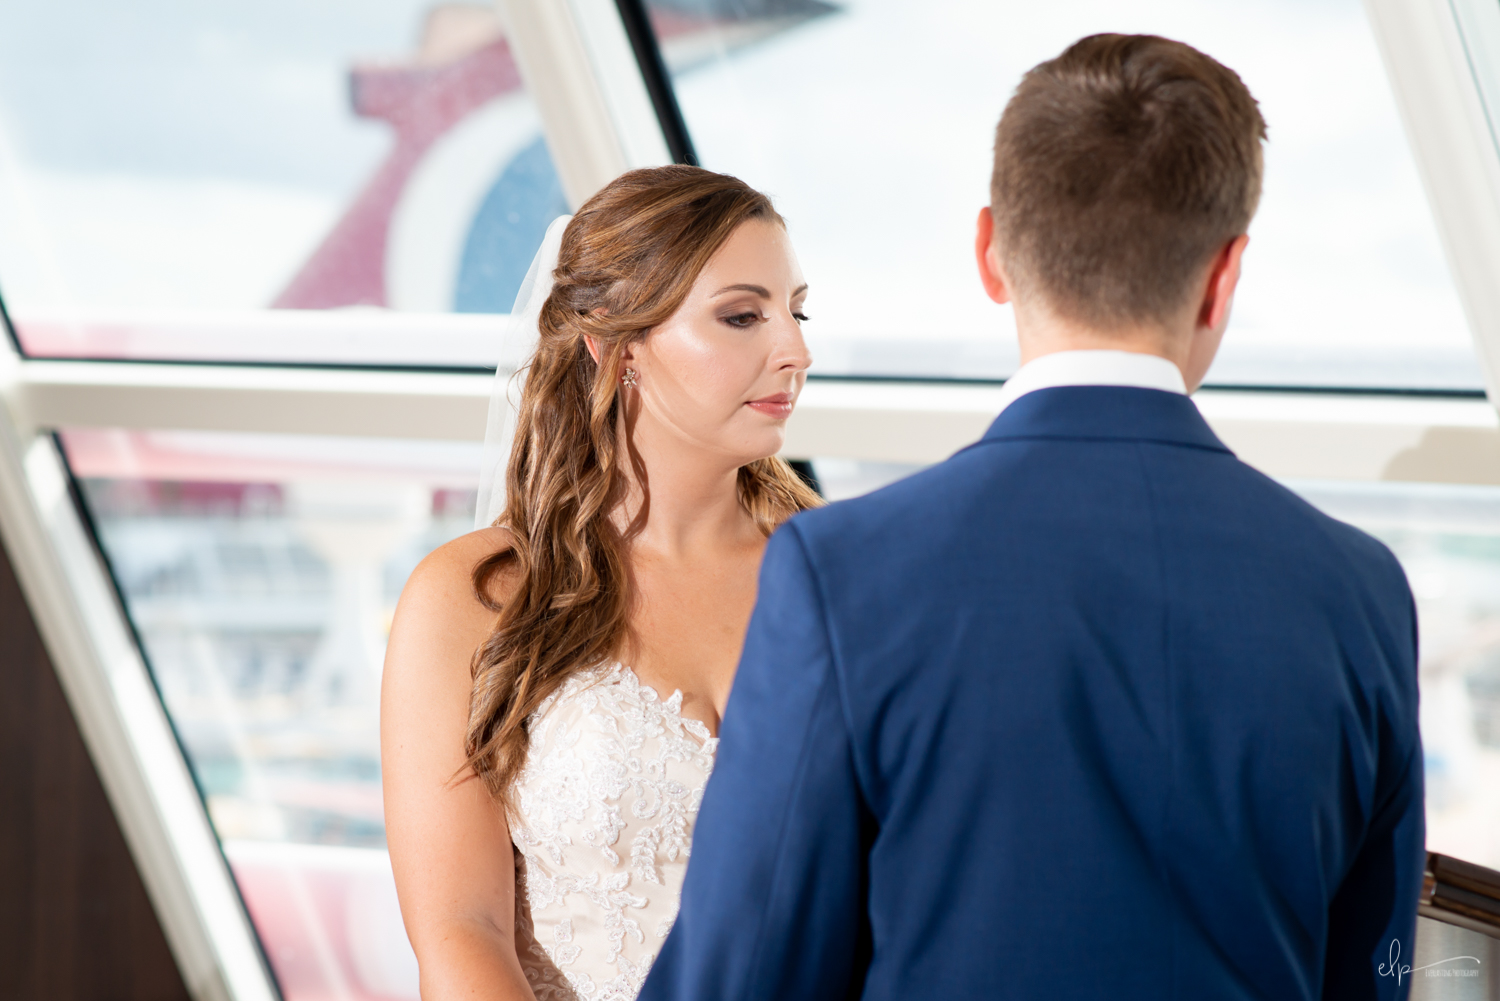 wedding ceremony portraits in outlook lounge on disney cruise